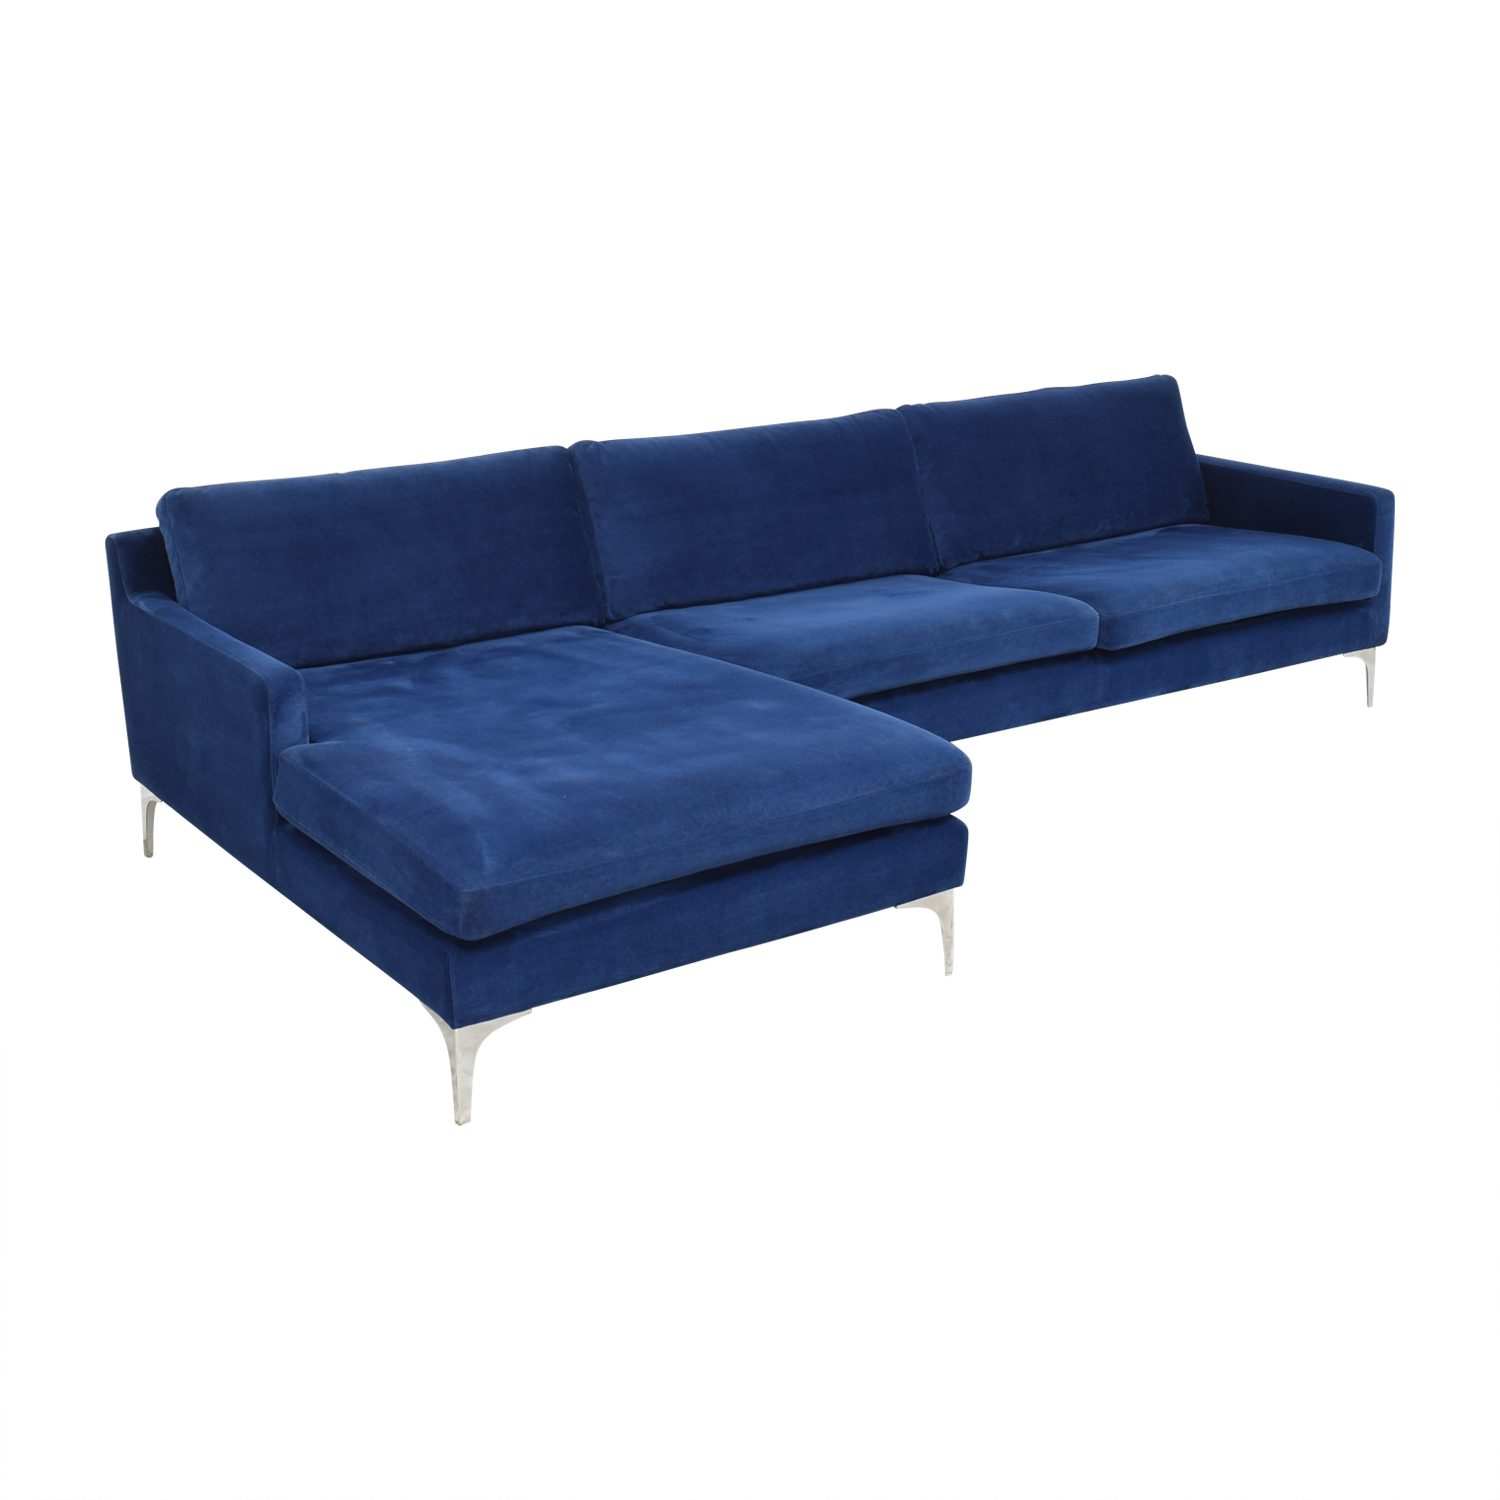 Joss & Main Joss & Main Bridgehampton Chaise Sectional Sofa blue